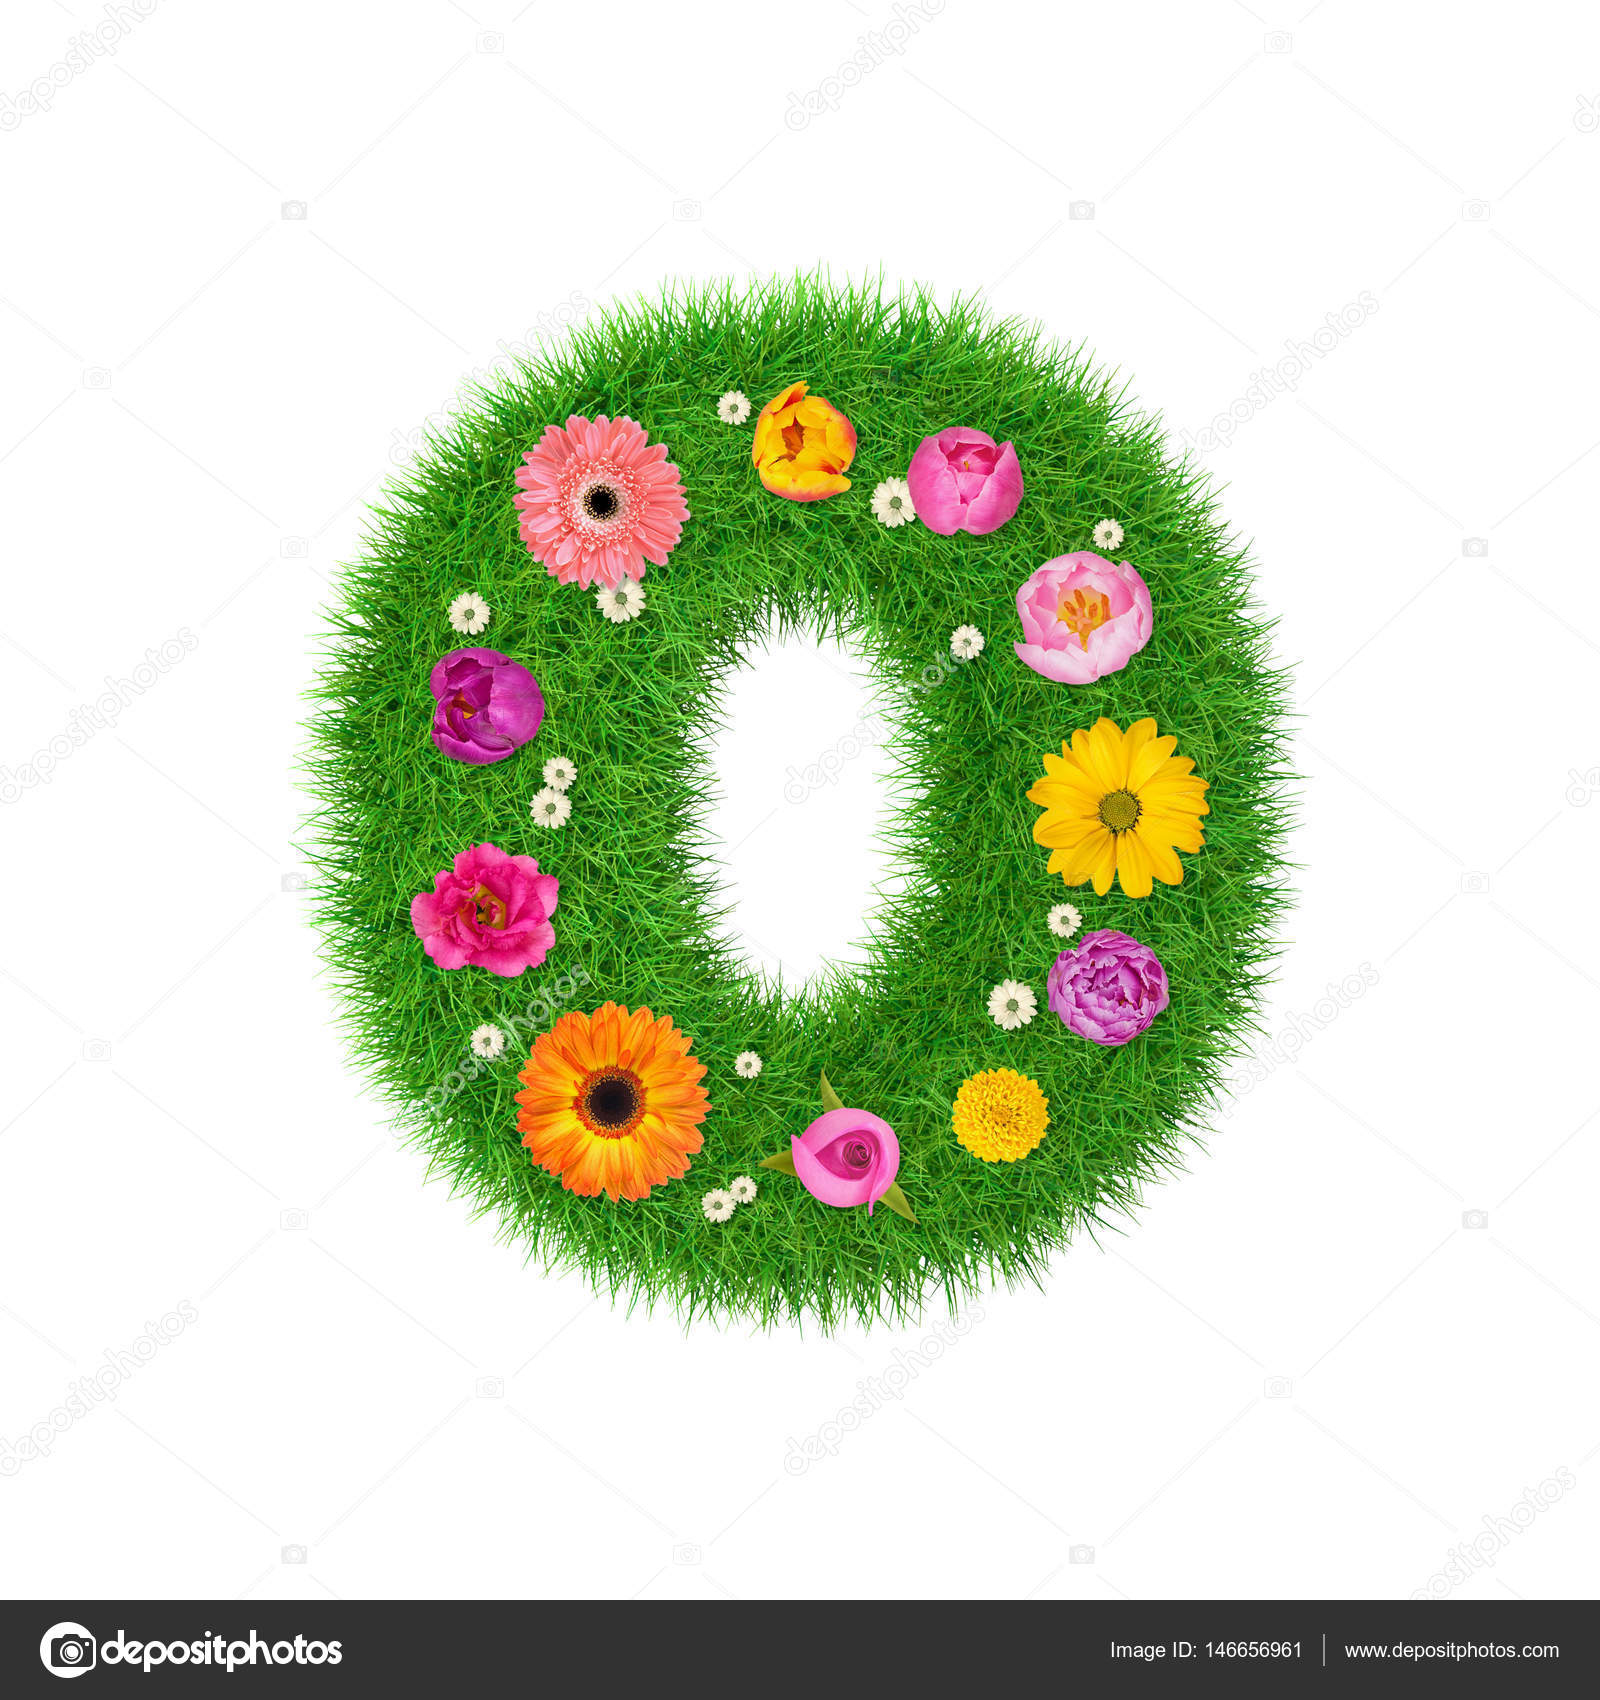 letter o made of grass and colorful flowers spring concept for graphic design collage